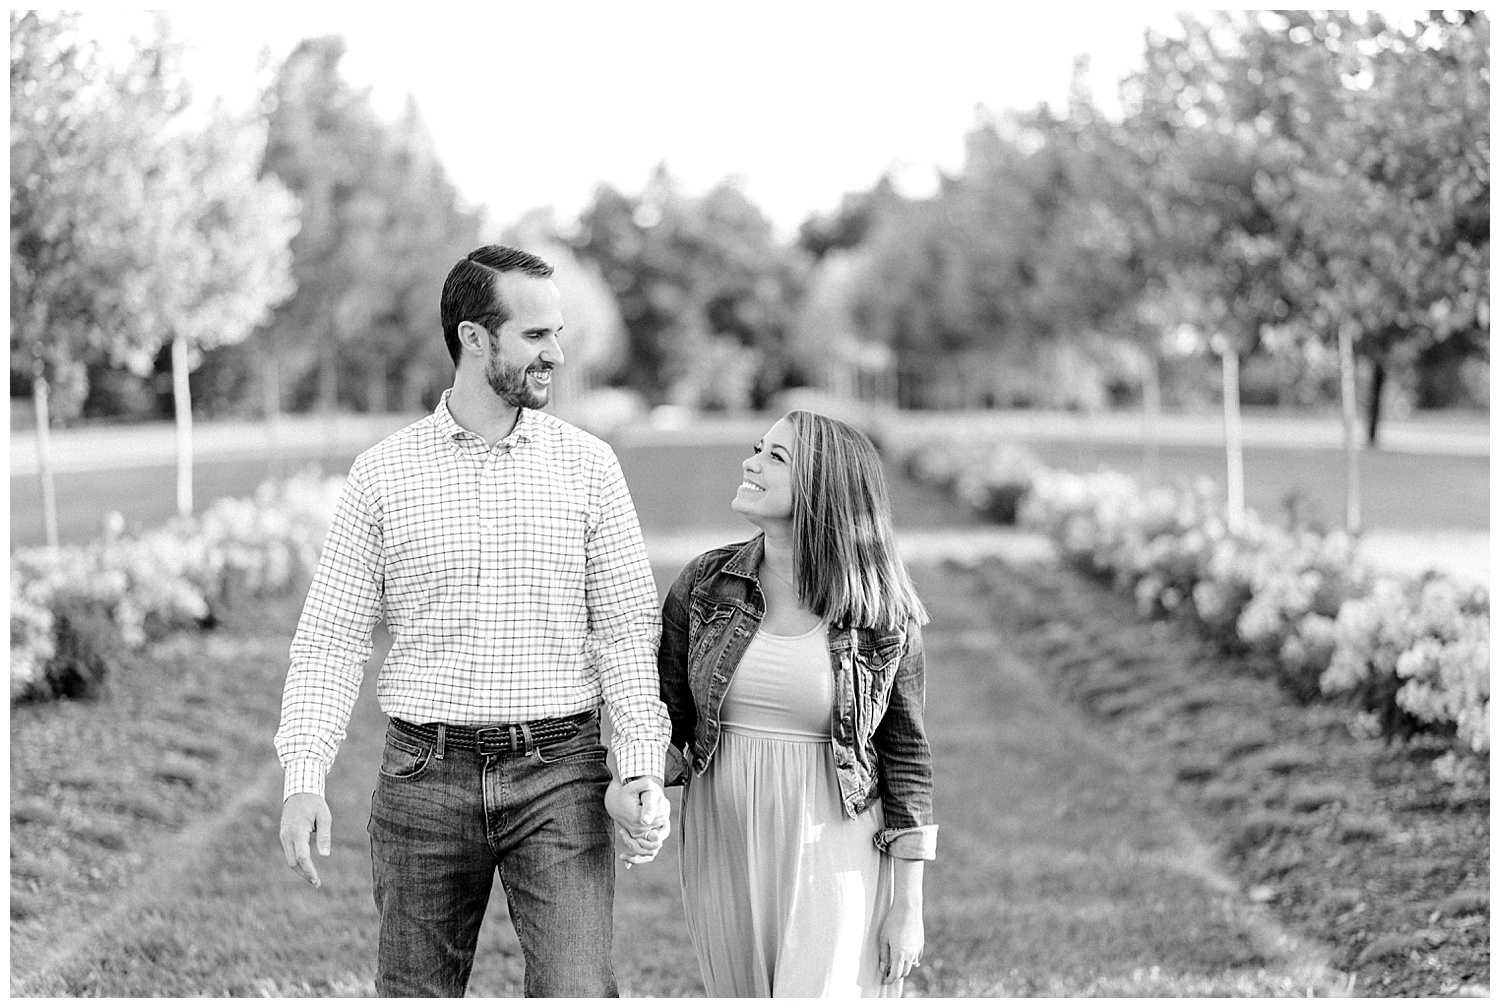 Cox_Arboretum_Anniversary_Session_Miamisburg_Ohio_Cassandra_Janina_Photography_Ohio_Wedding_Photographer_0263.jpg